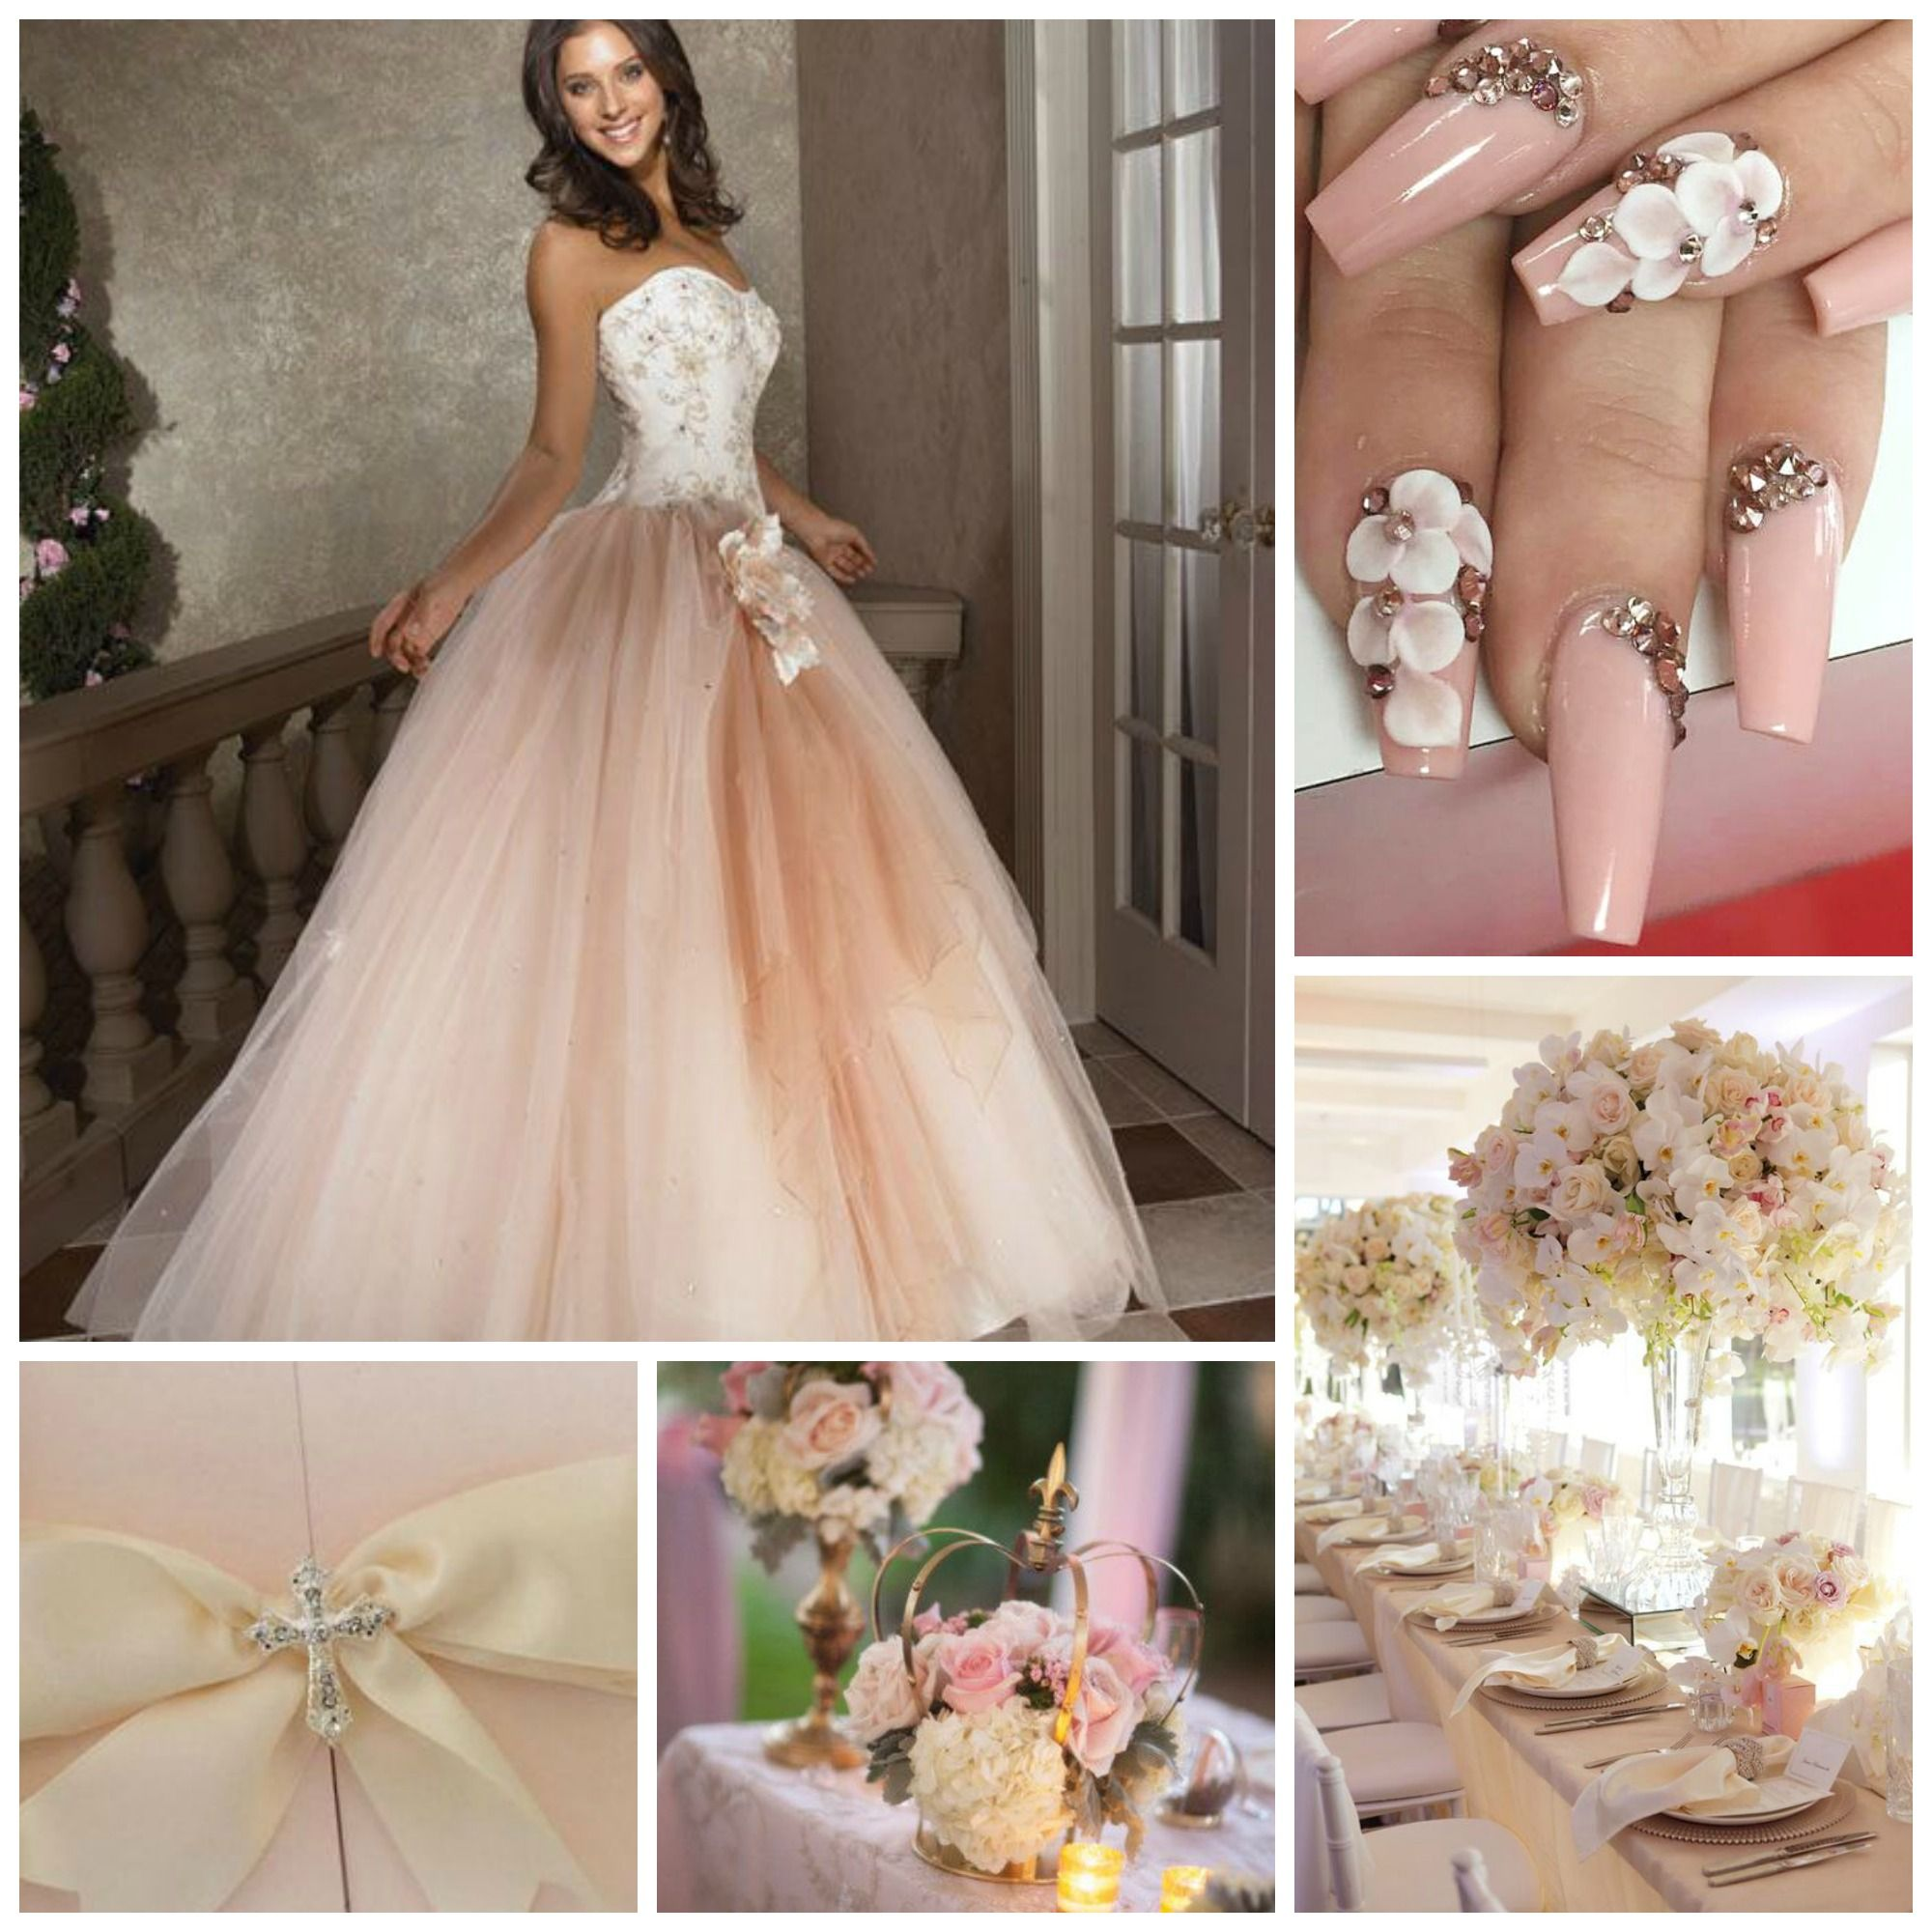 Quince Theme Decorations Rose Gold Quinceanera Dresses Quinceanera Dresses Gold Quinceanera Dresses